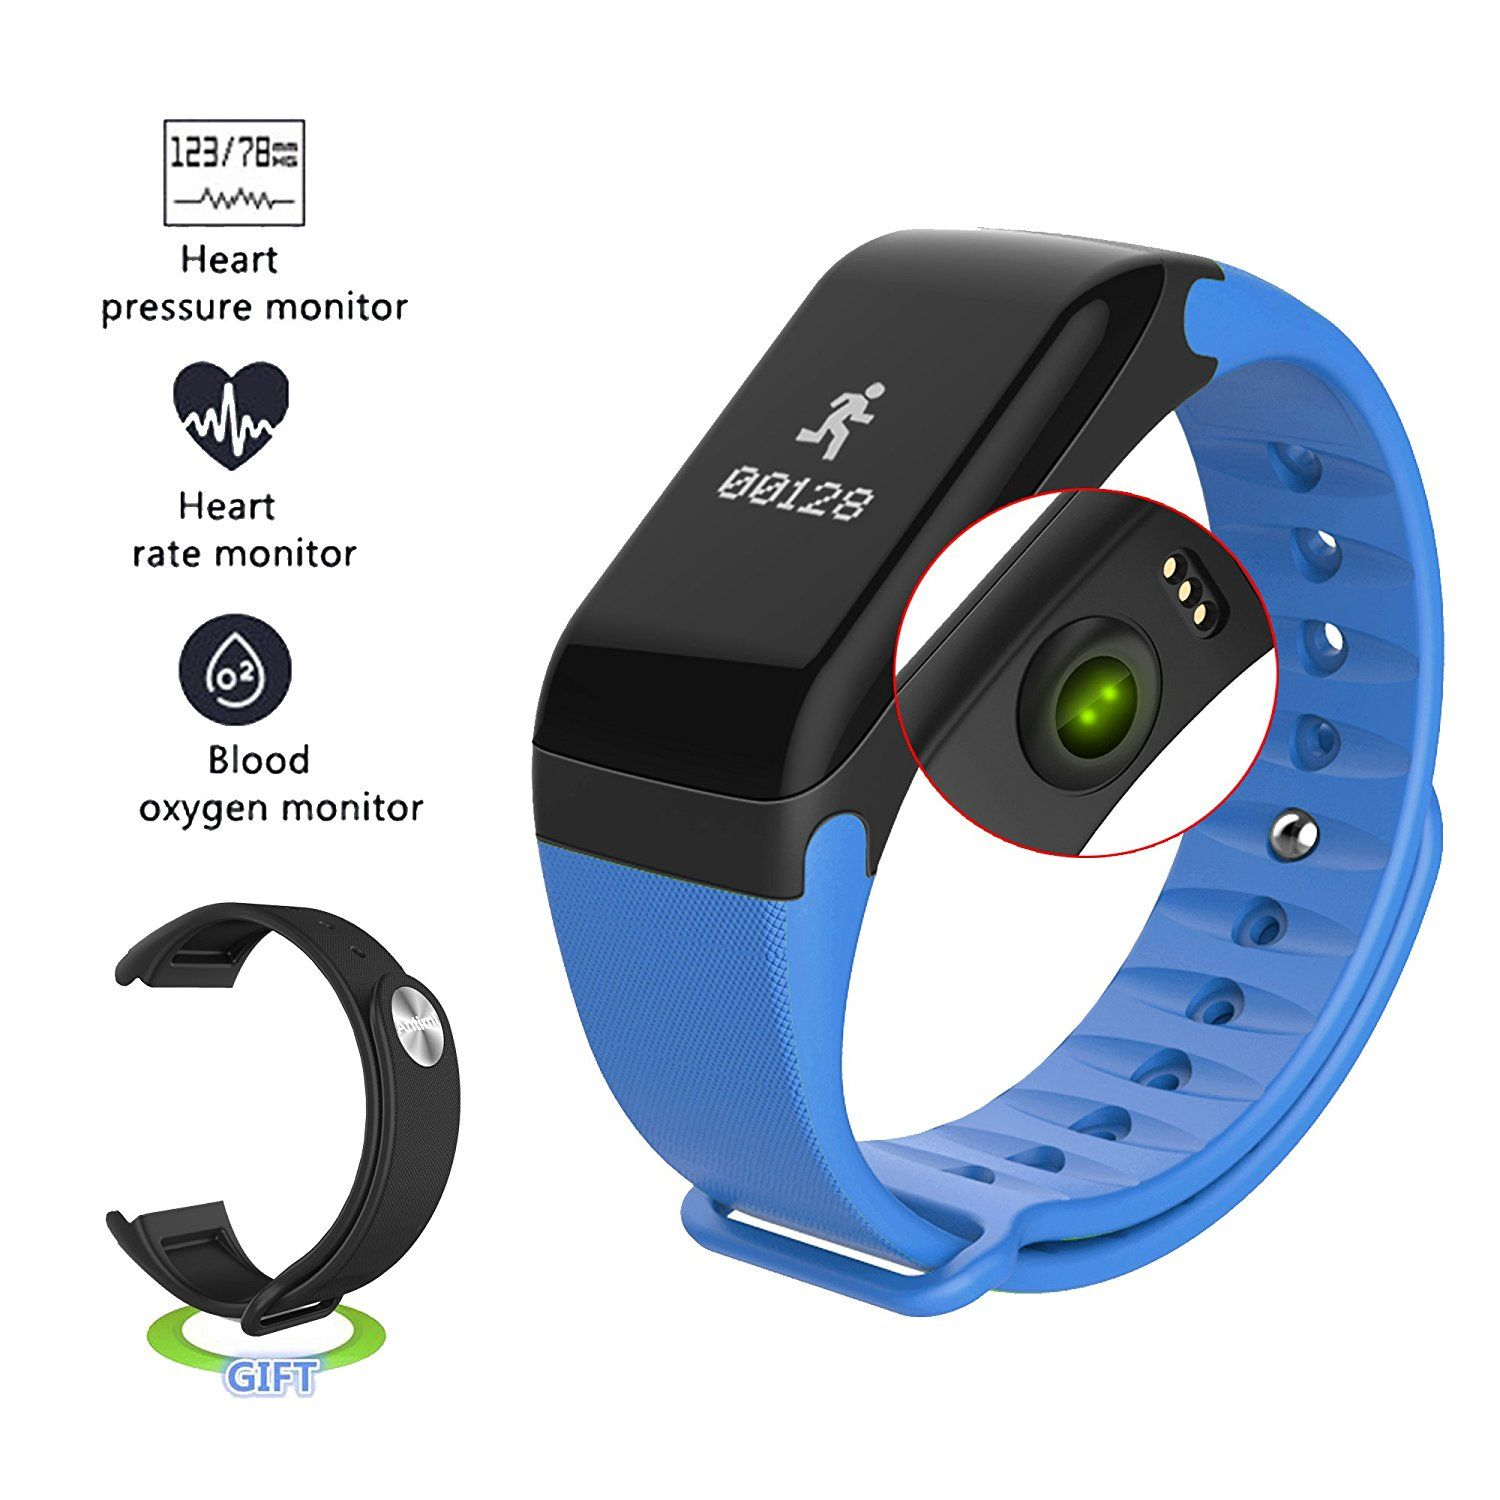 youtube the heart monitor rate wrist activity watches tracker polar meet watch